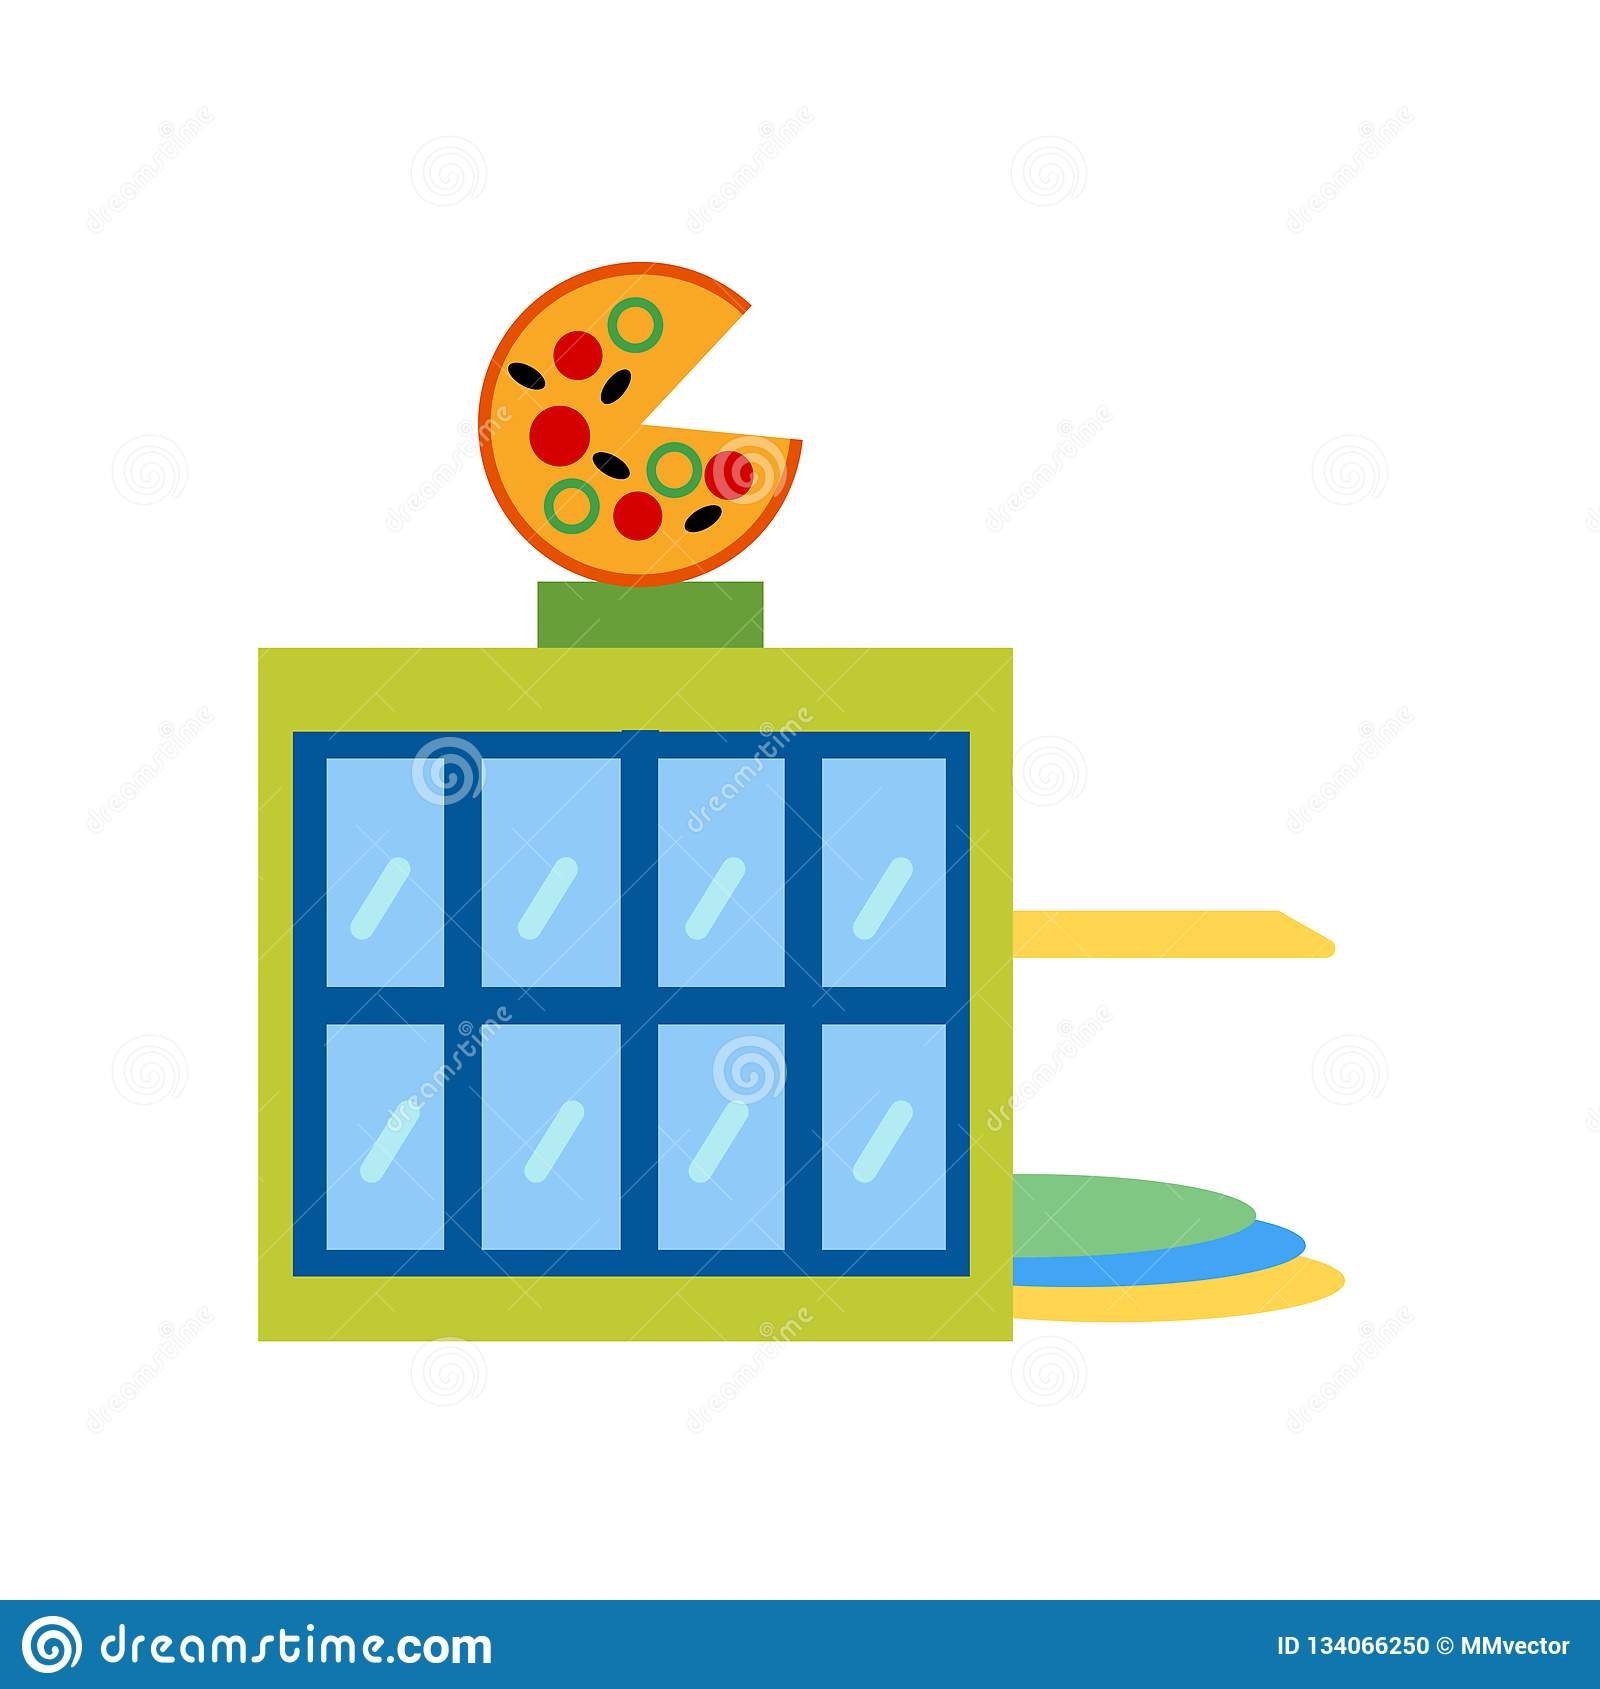 Pizzeria icon vector sign and symbol isolated on white background, Pizzeria logo concept